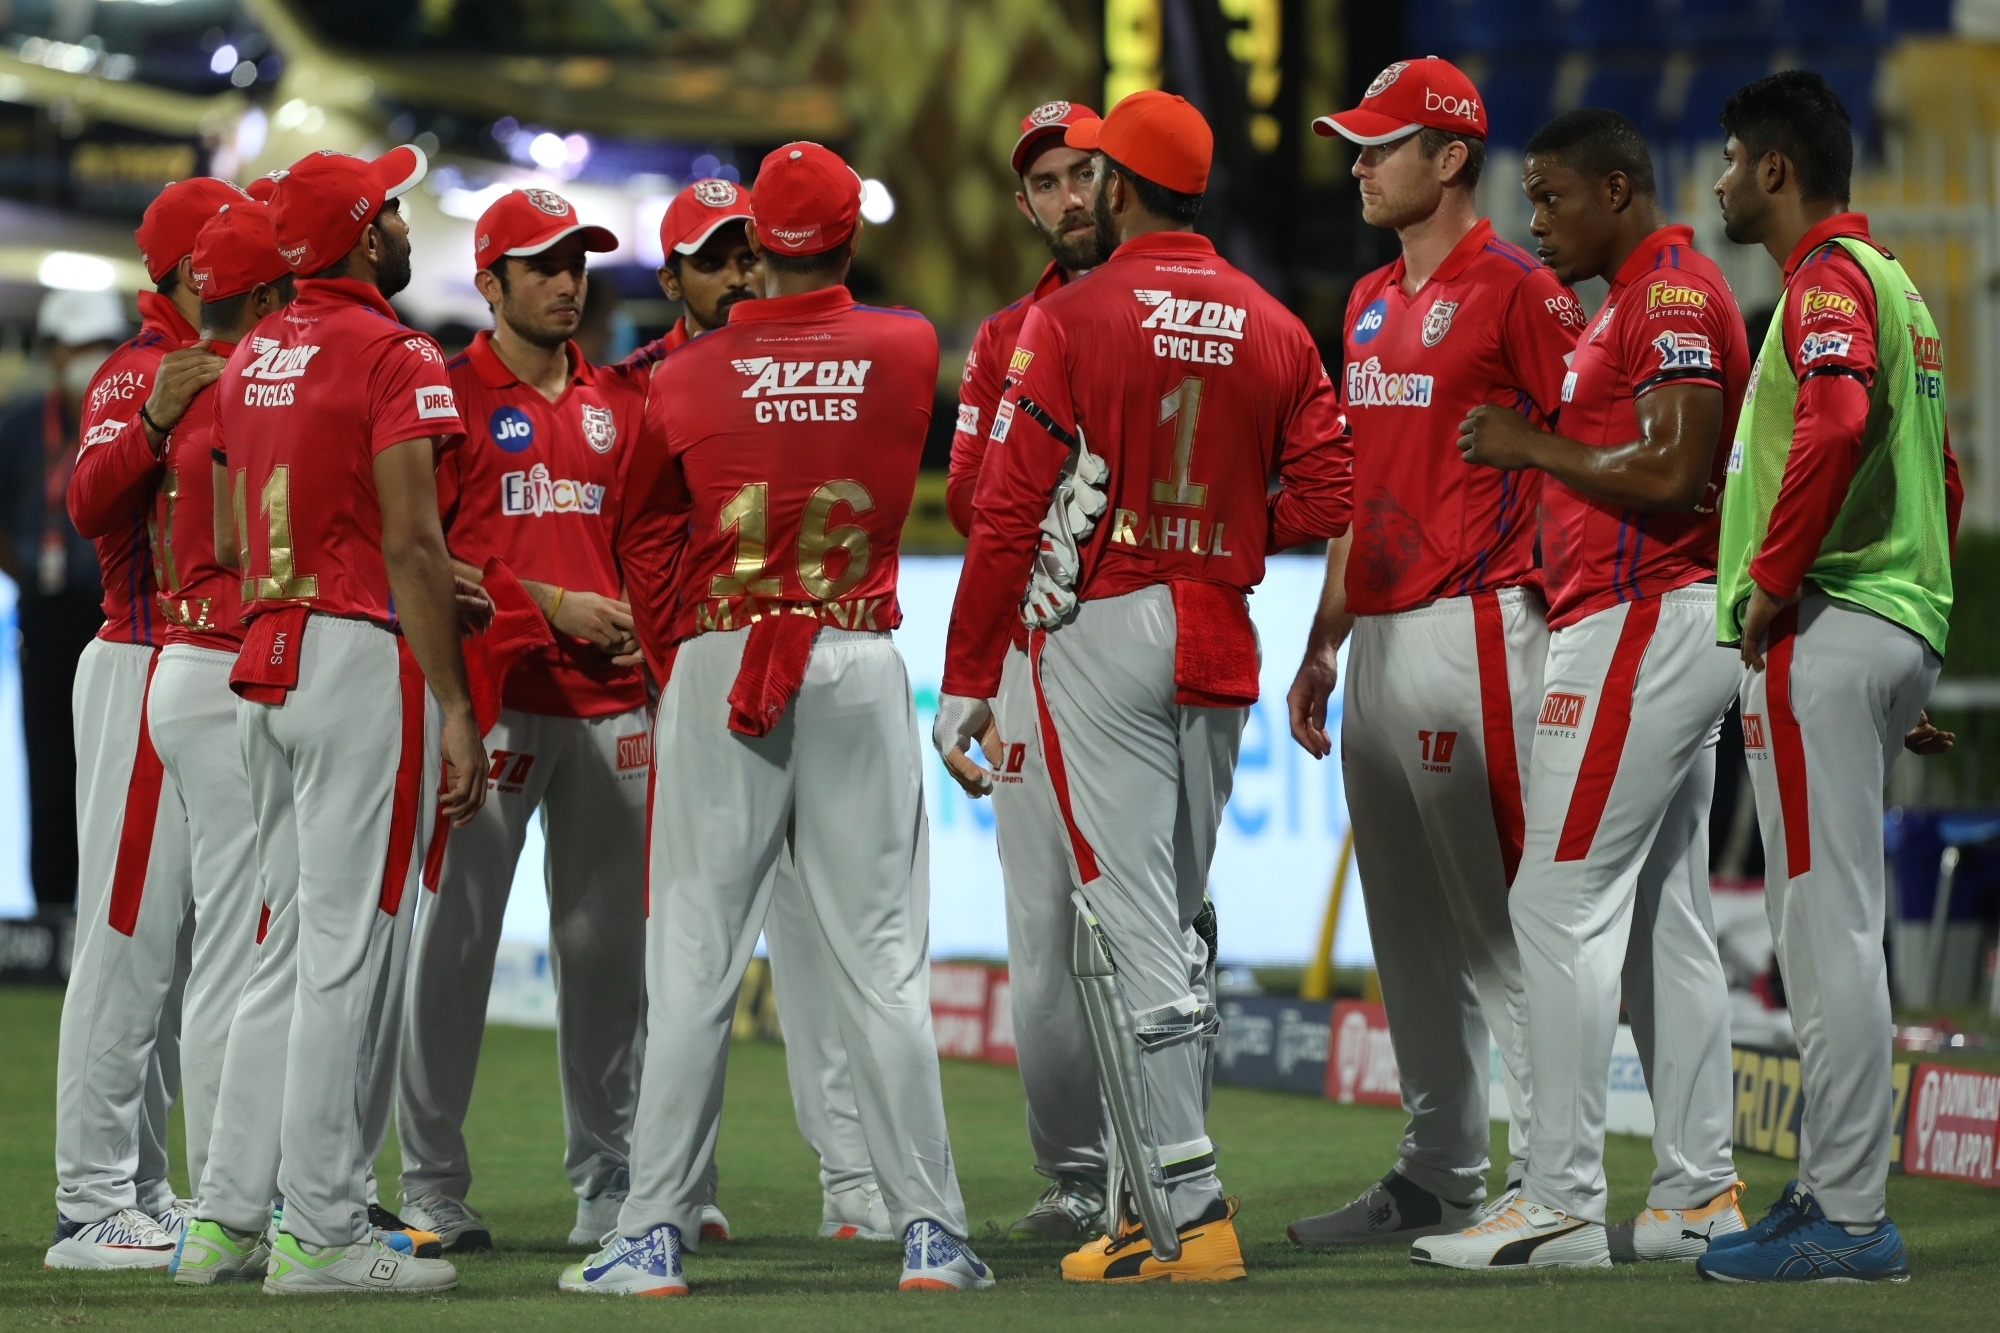 KXIP managed to turnaround their fortunes after losing first 6 of their 7 games | BCCI/IPL